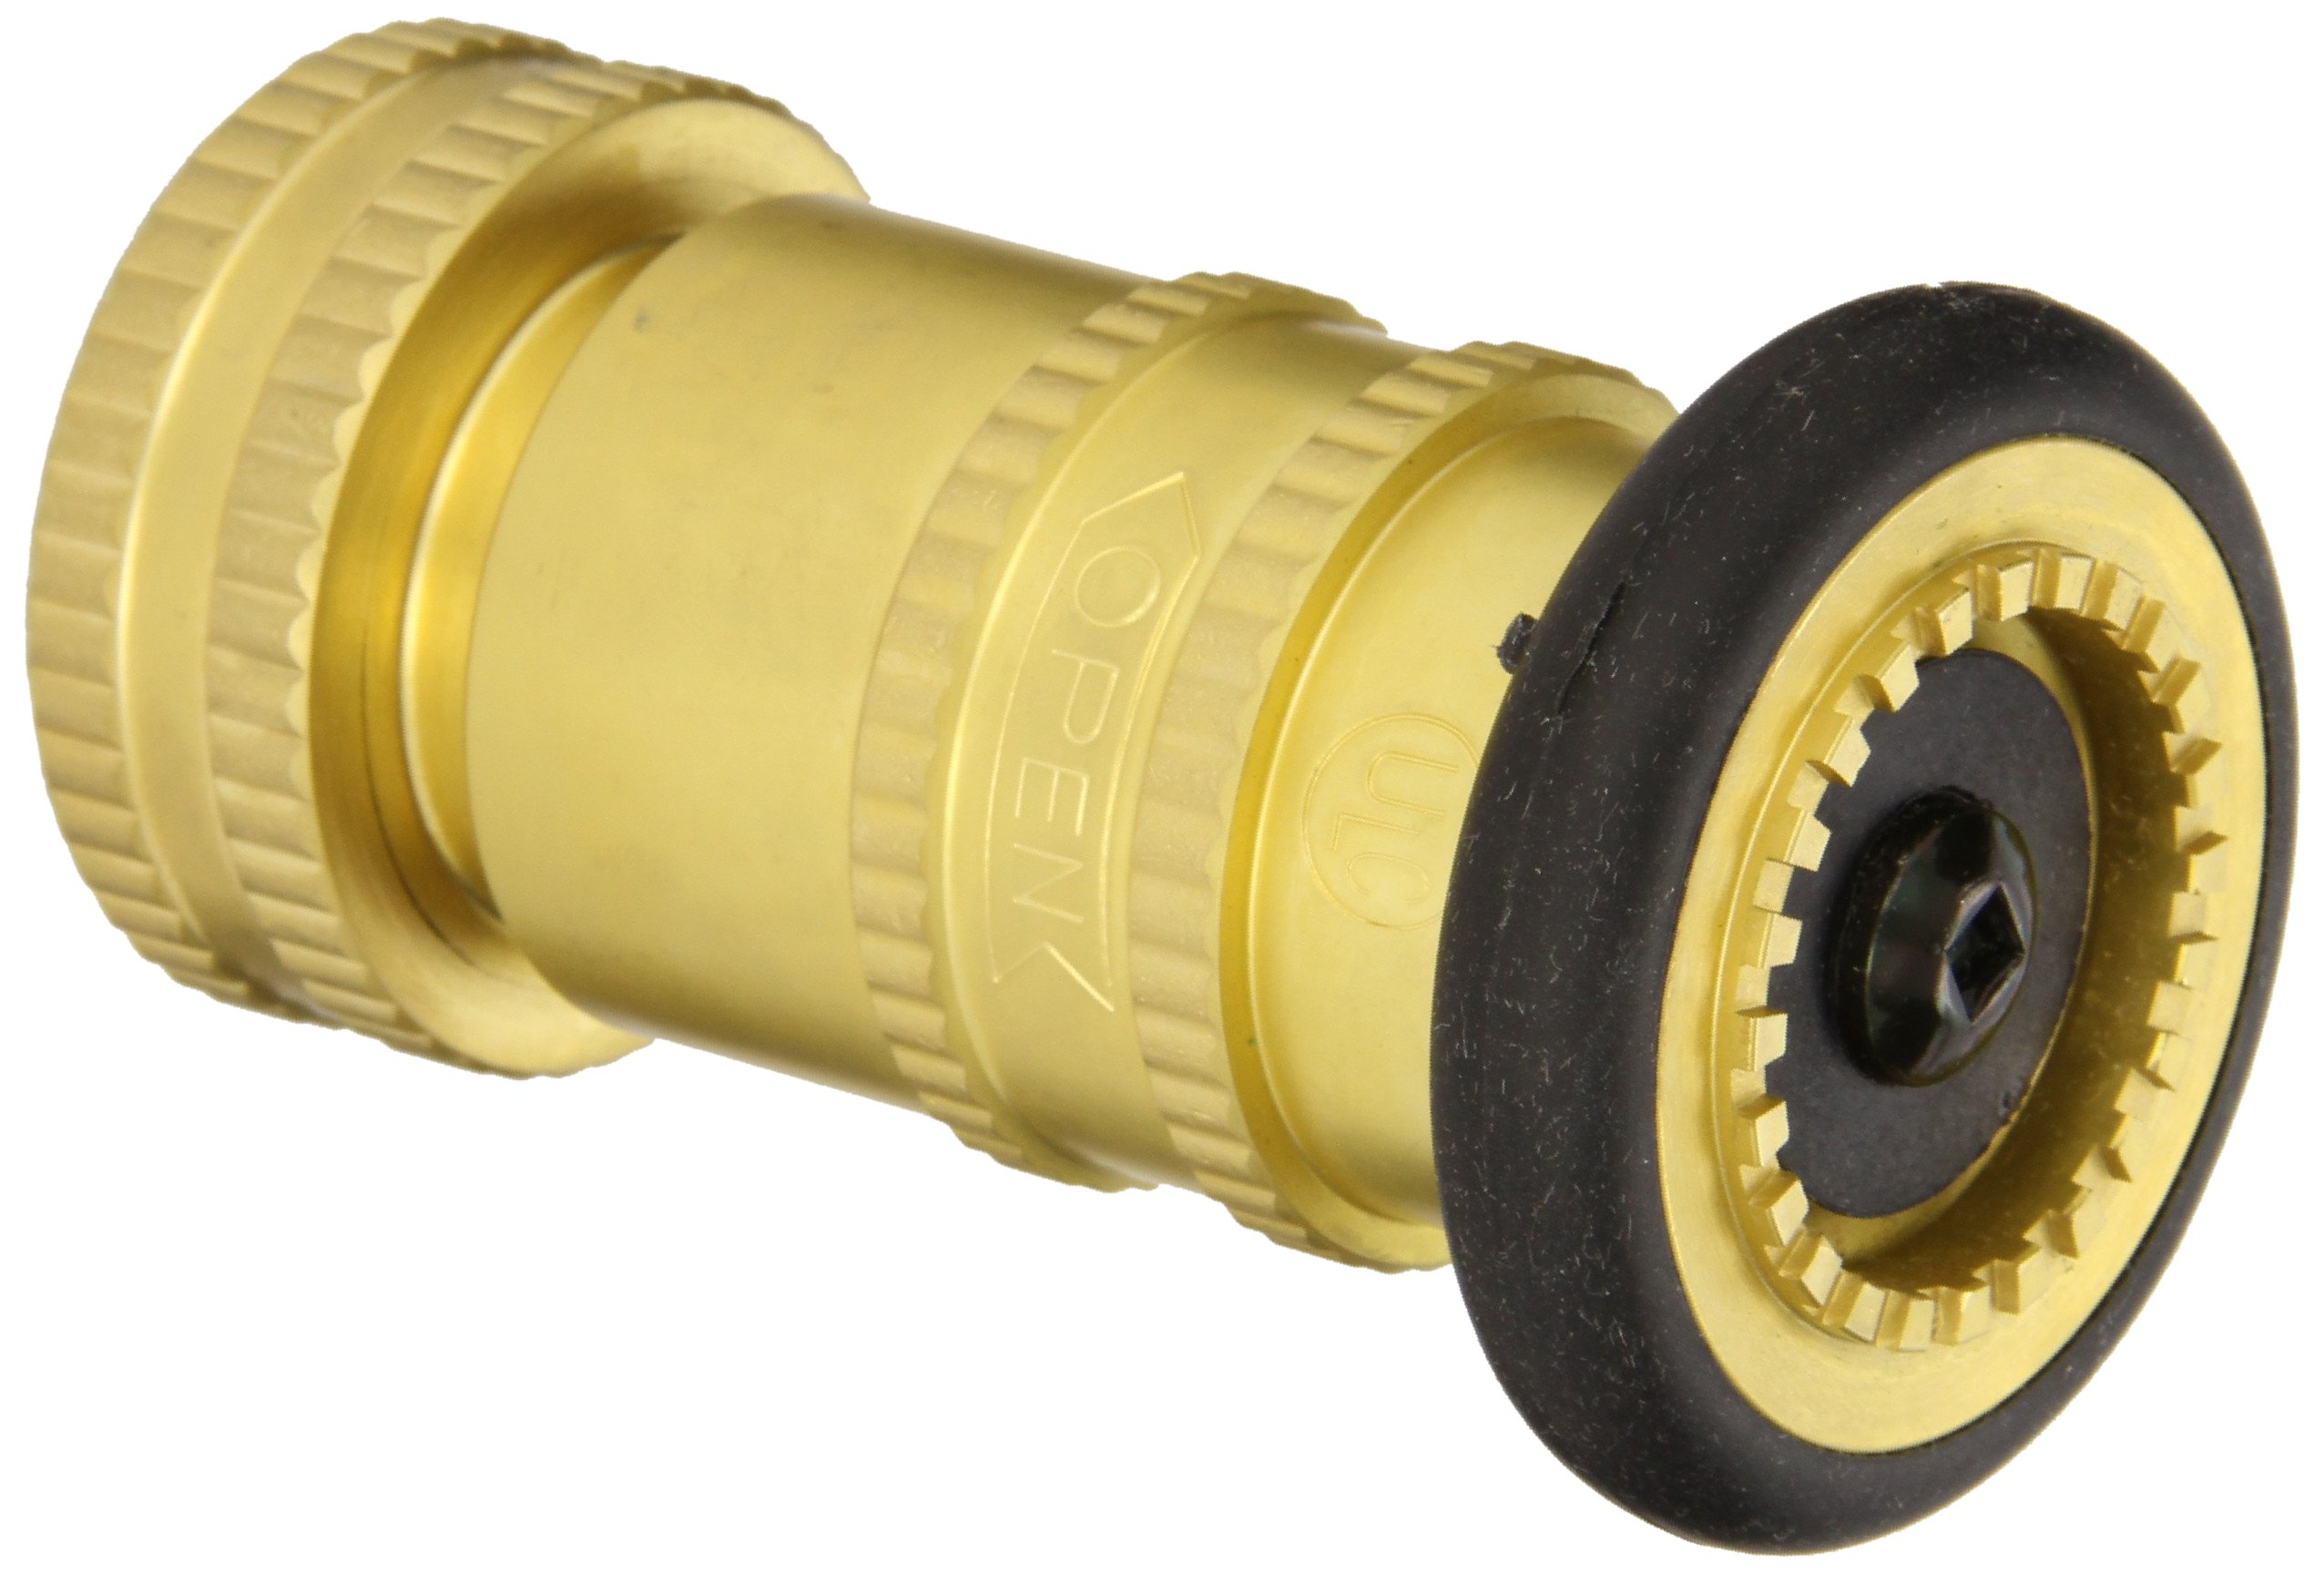 Moon 7171-1511 Brass Fire Hose Nozzle, Industrial Fog, 85 gpm, 1-1/2'' NPSH